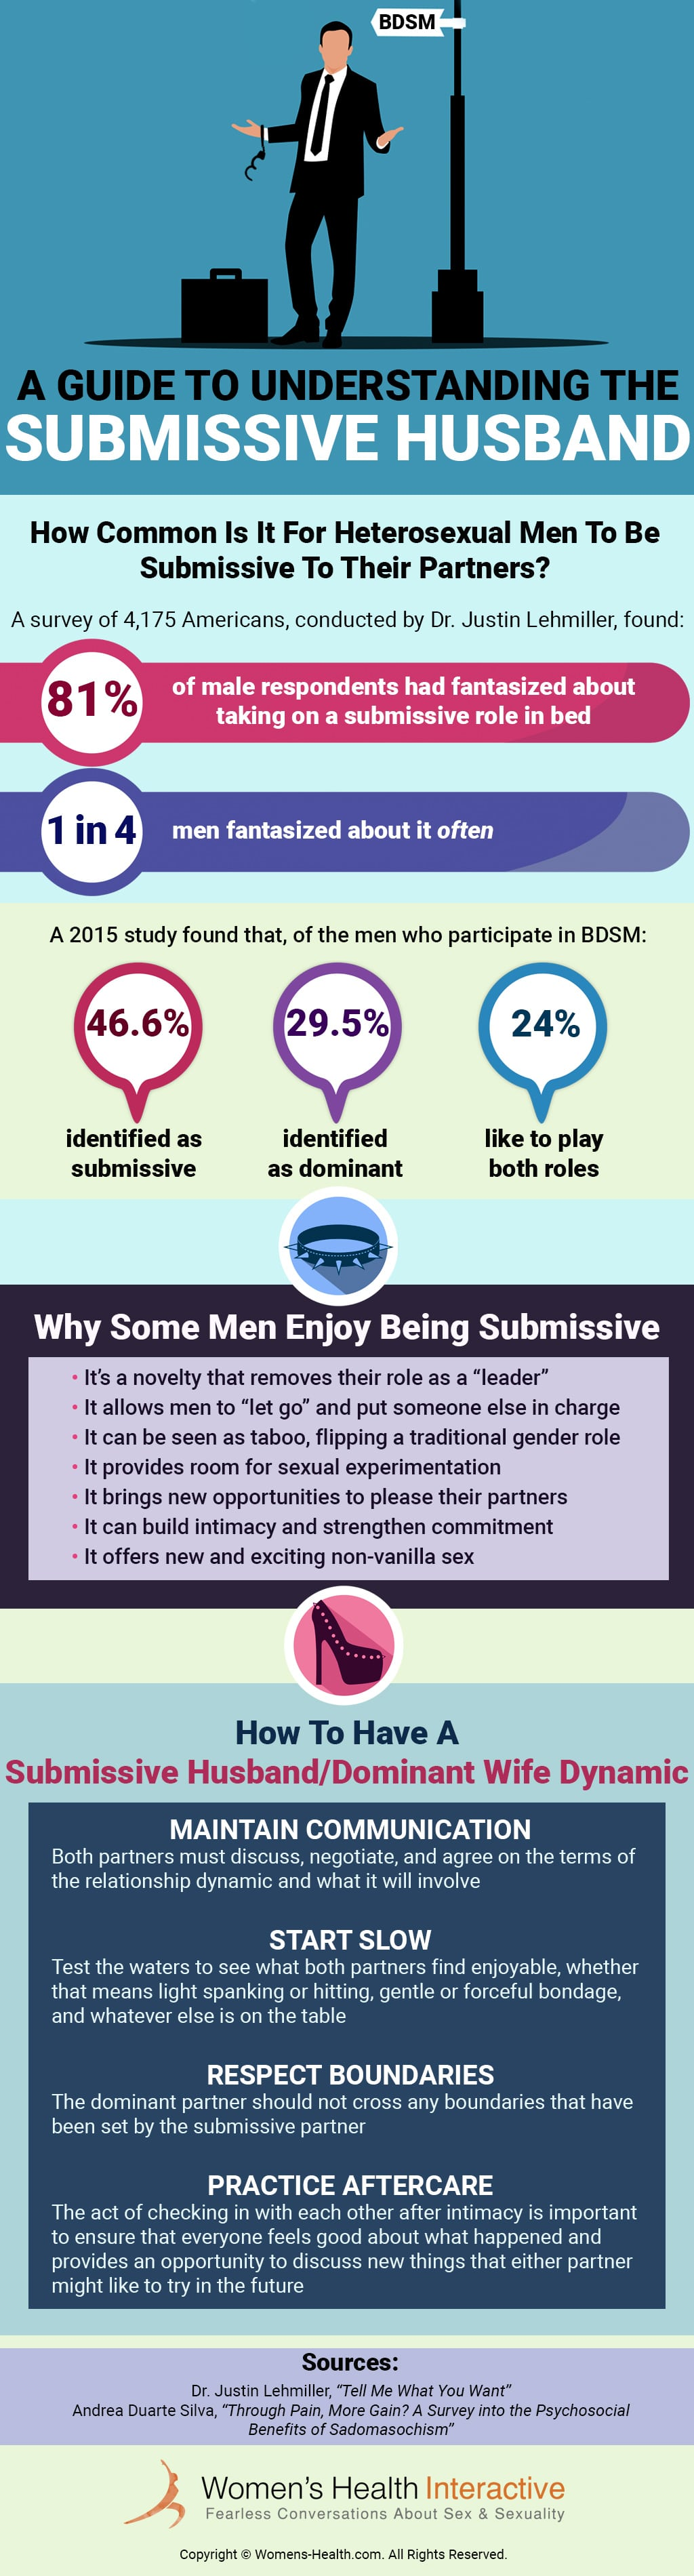 An Infographic Guide To The Submissive Husband/Dominant Wife Relationship Dynamic